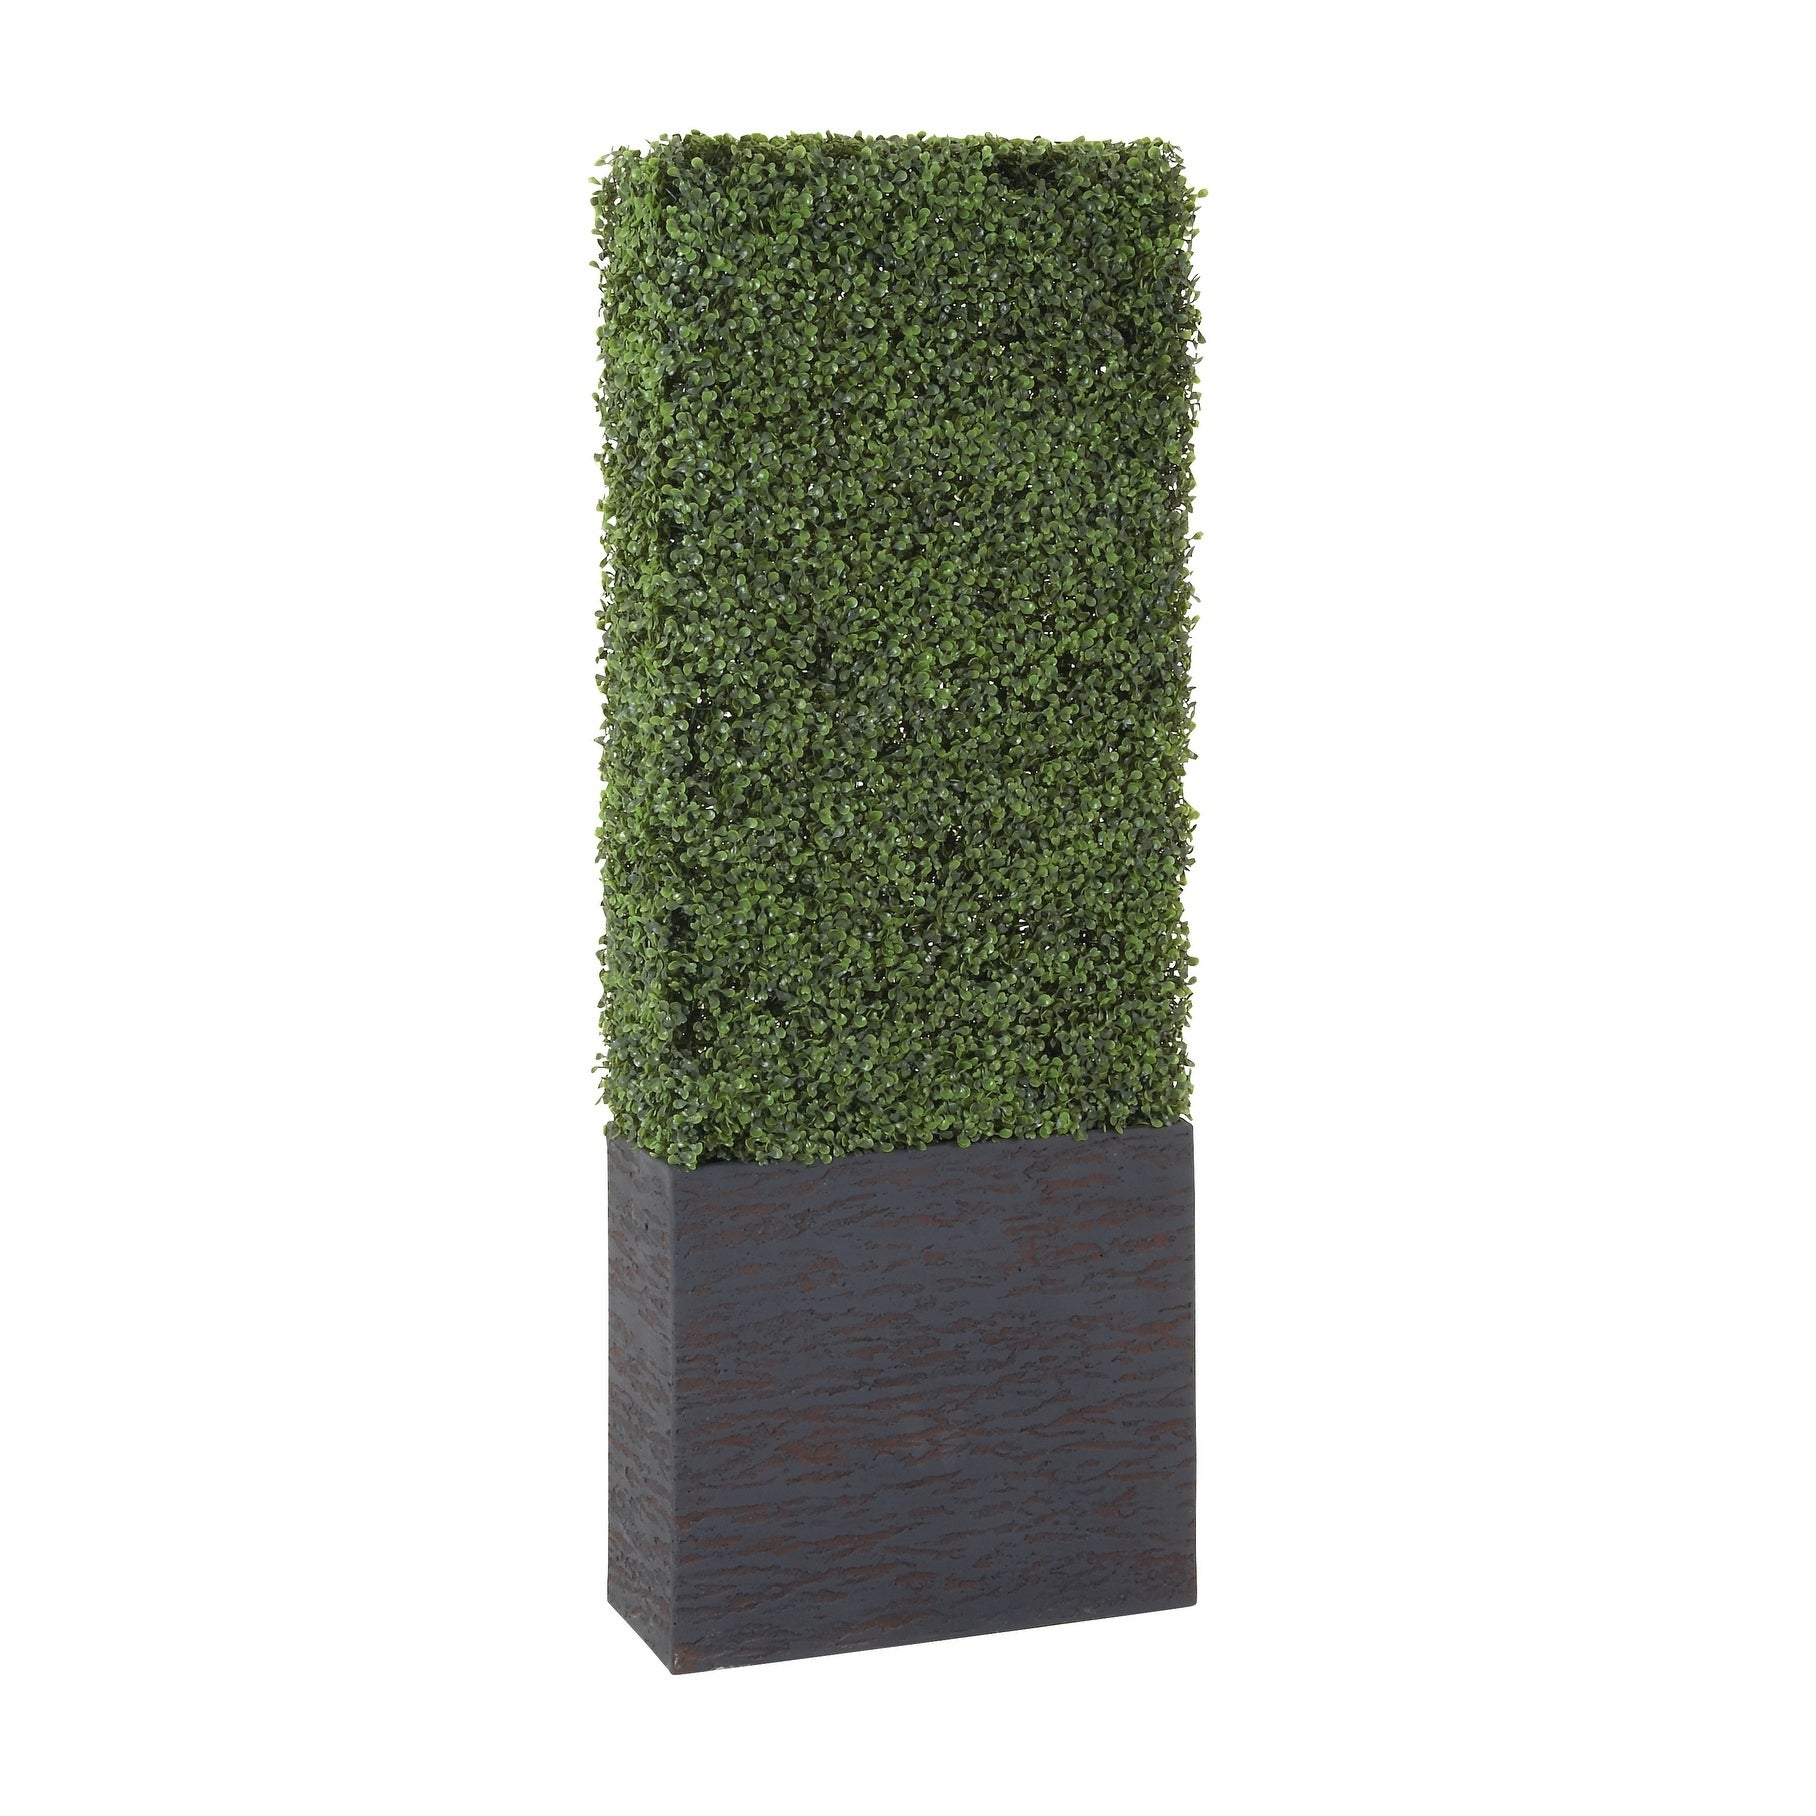 Benzara Grand and Unique Boxwood Hedge (Grand & Unique Bo...